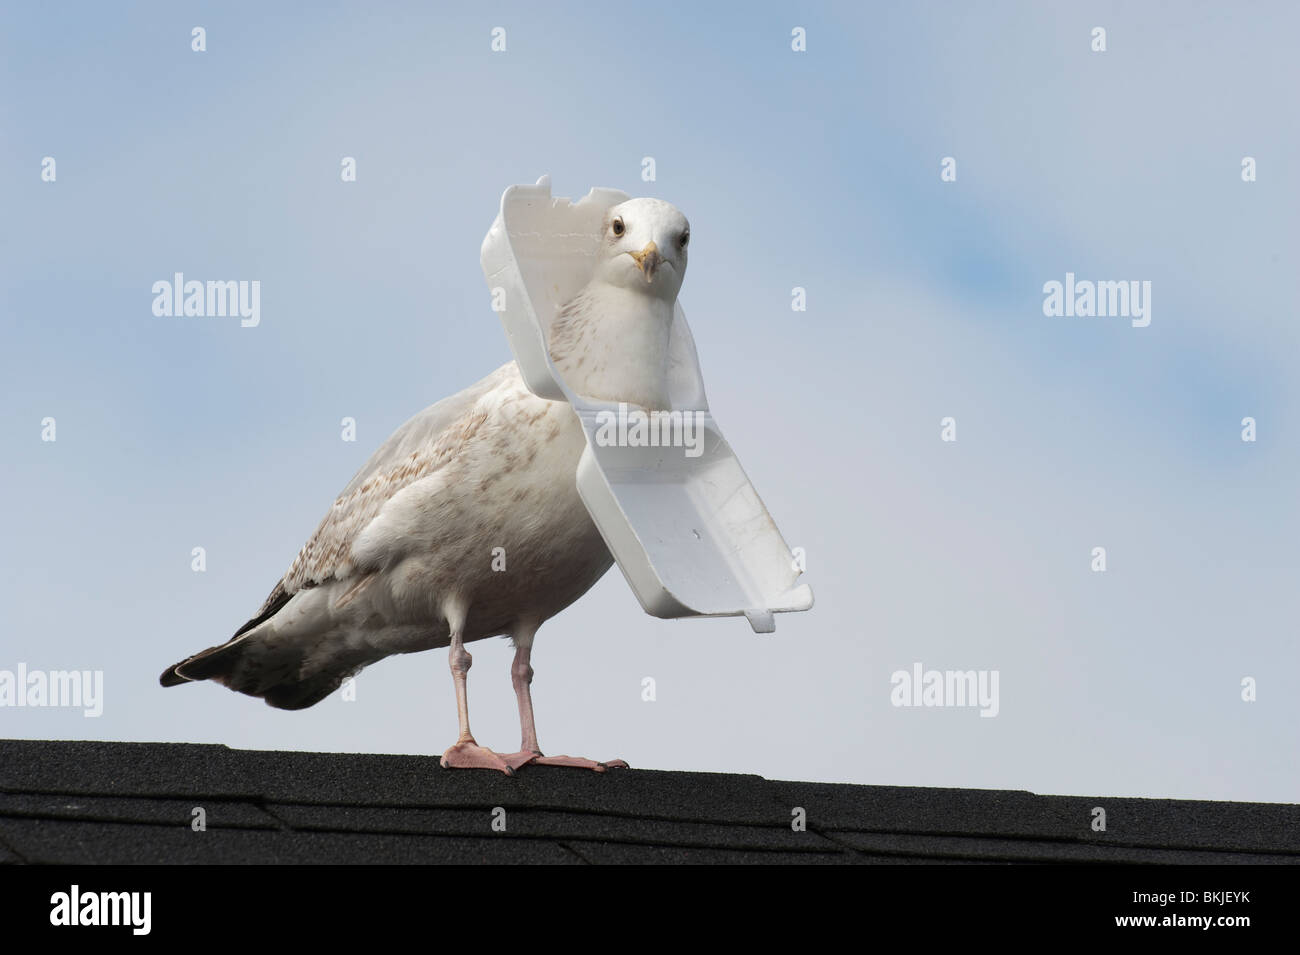 Seagull with polystyrene container stuck around his neck stock photo seagull with polystyrene container stuck around his neck altavistaventures Image collections